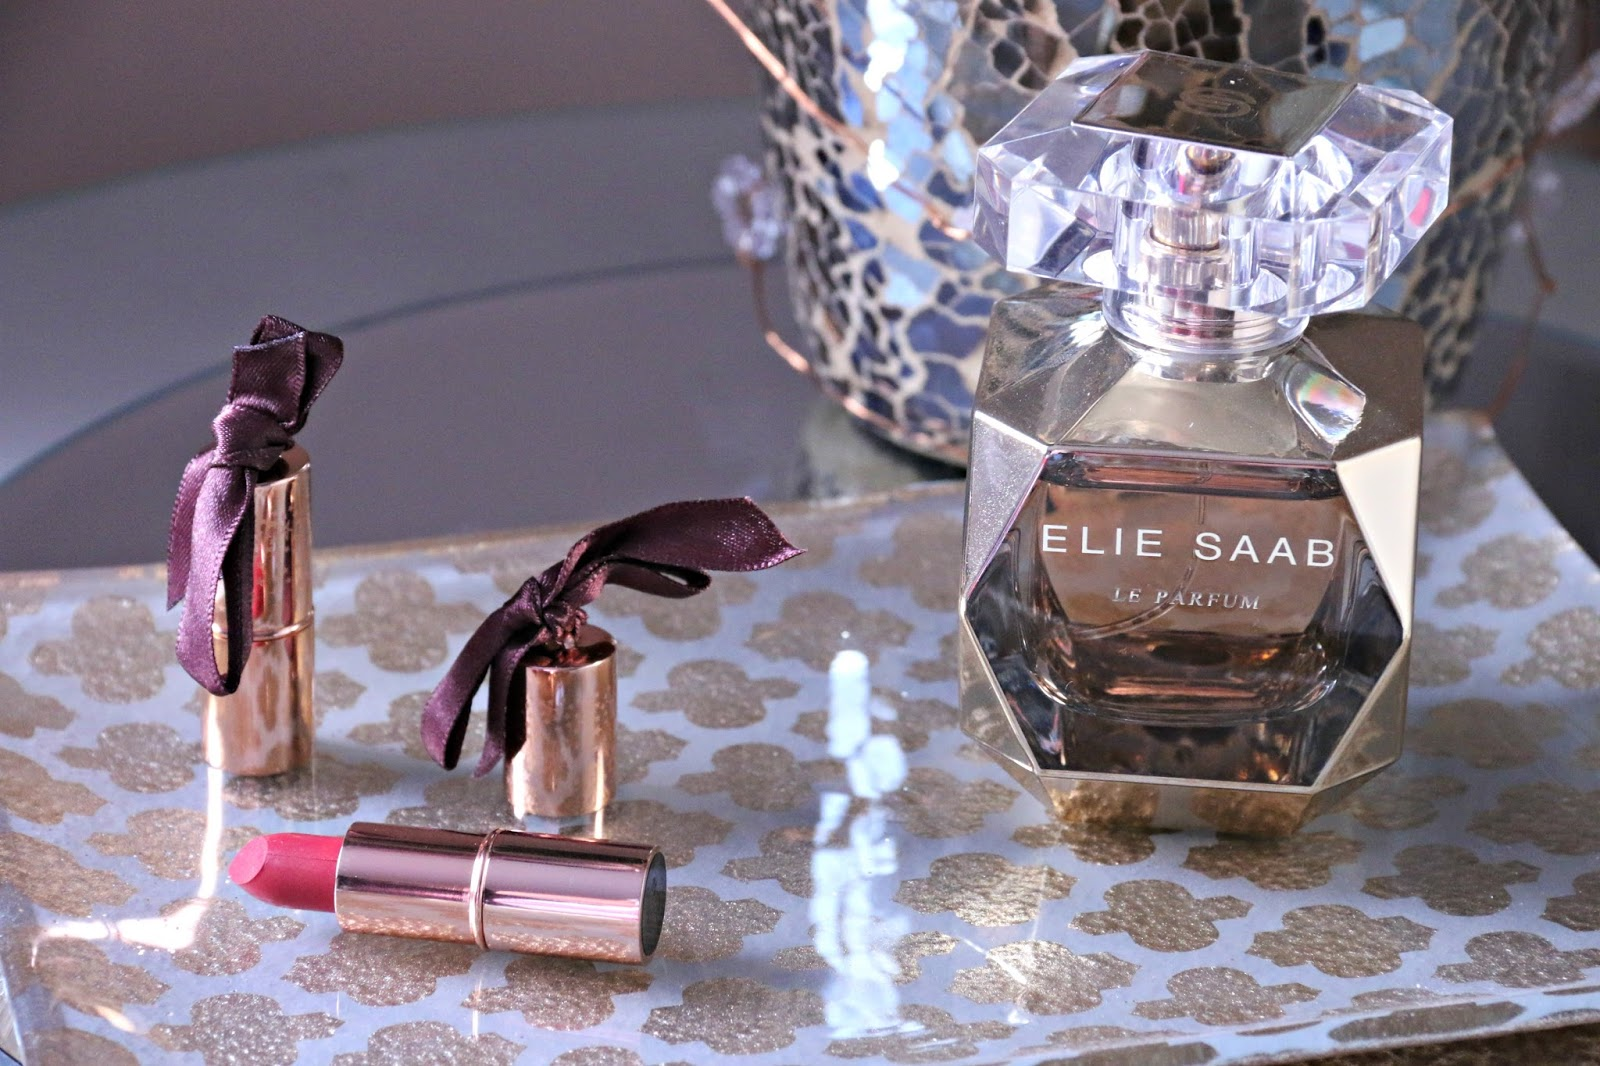 Limited Edition Elie Saab Le Parfum Eclat D'Or Perfume Review Image